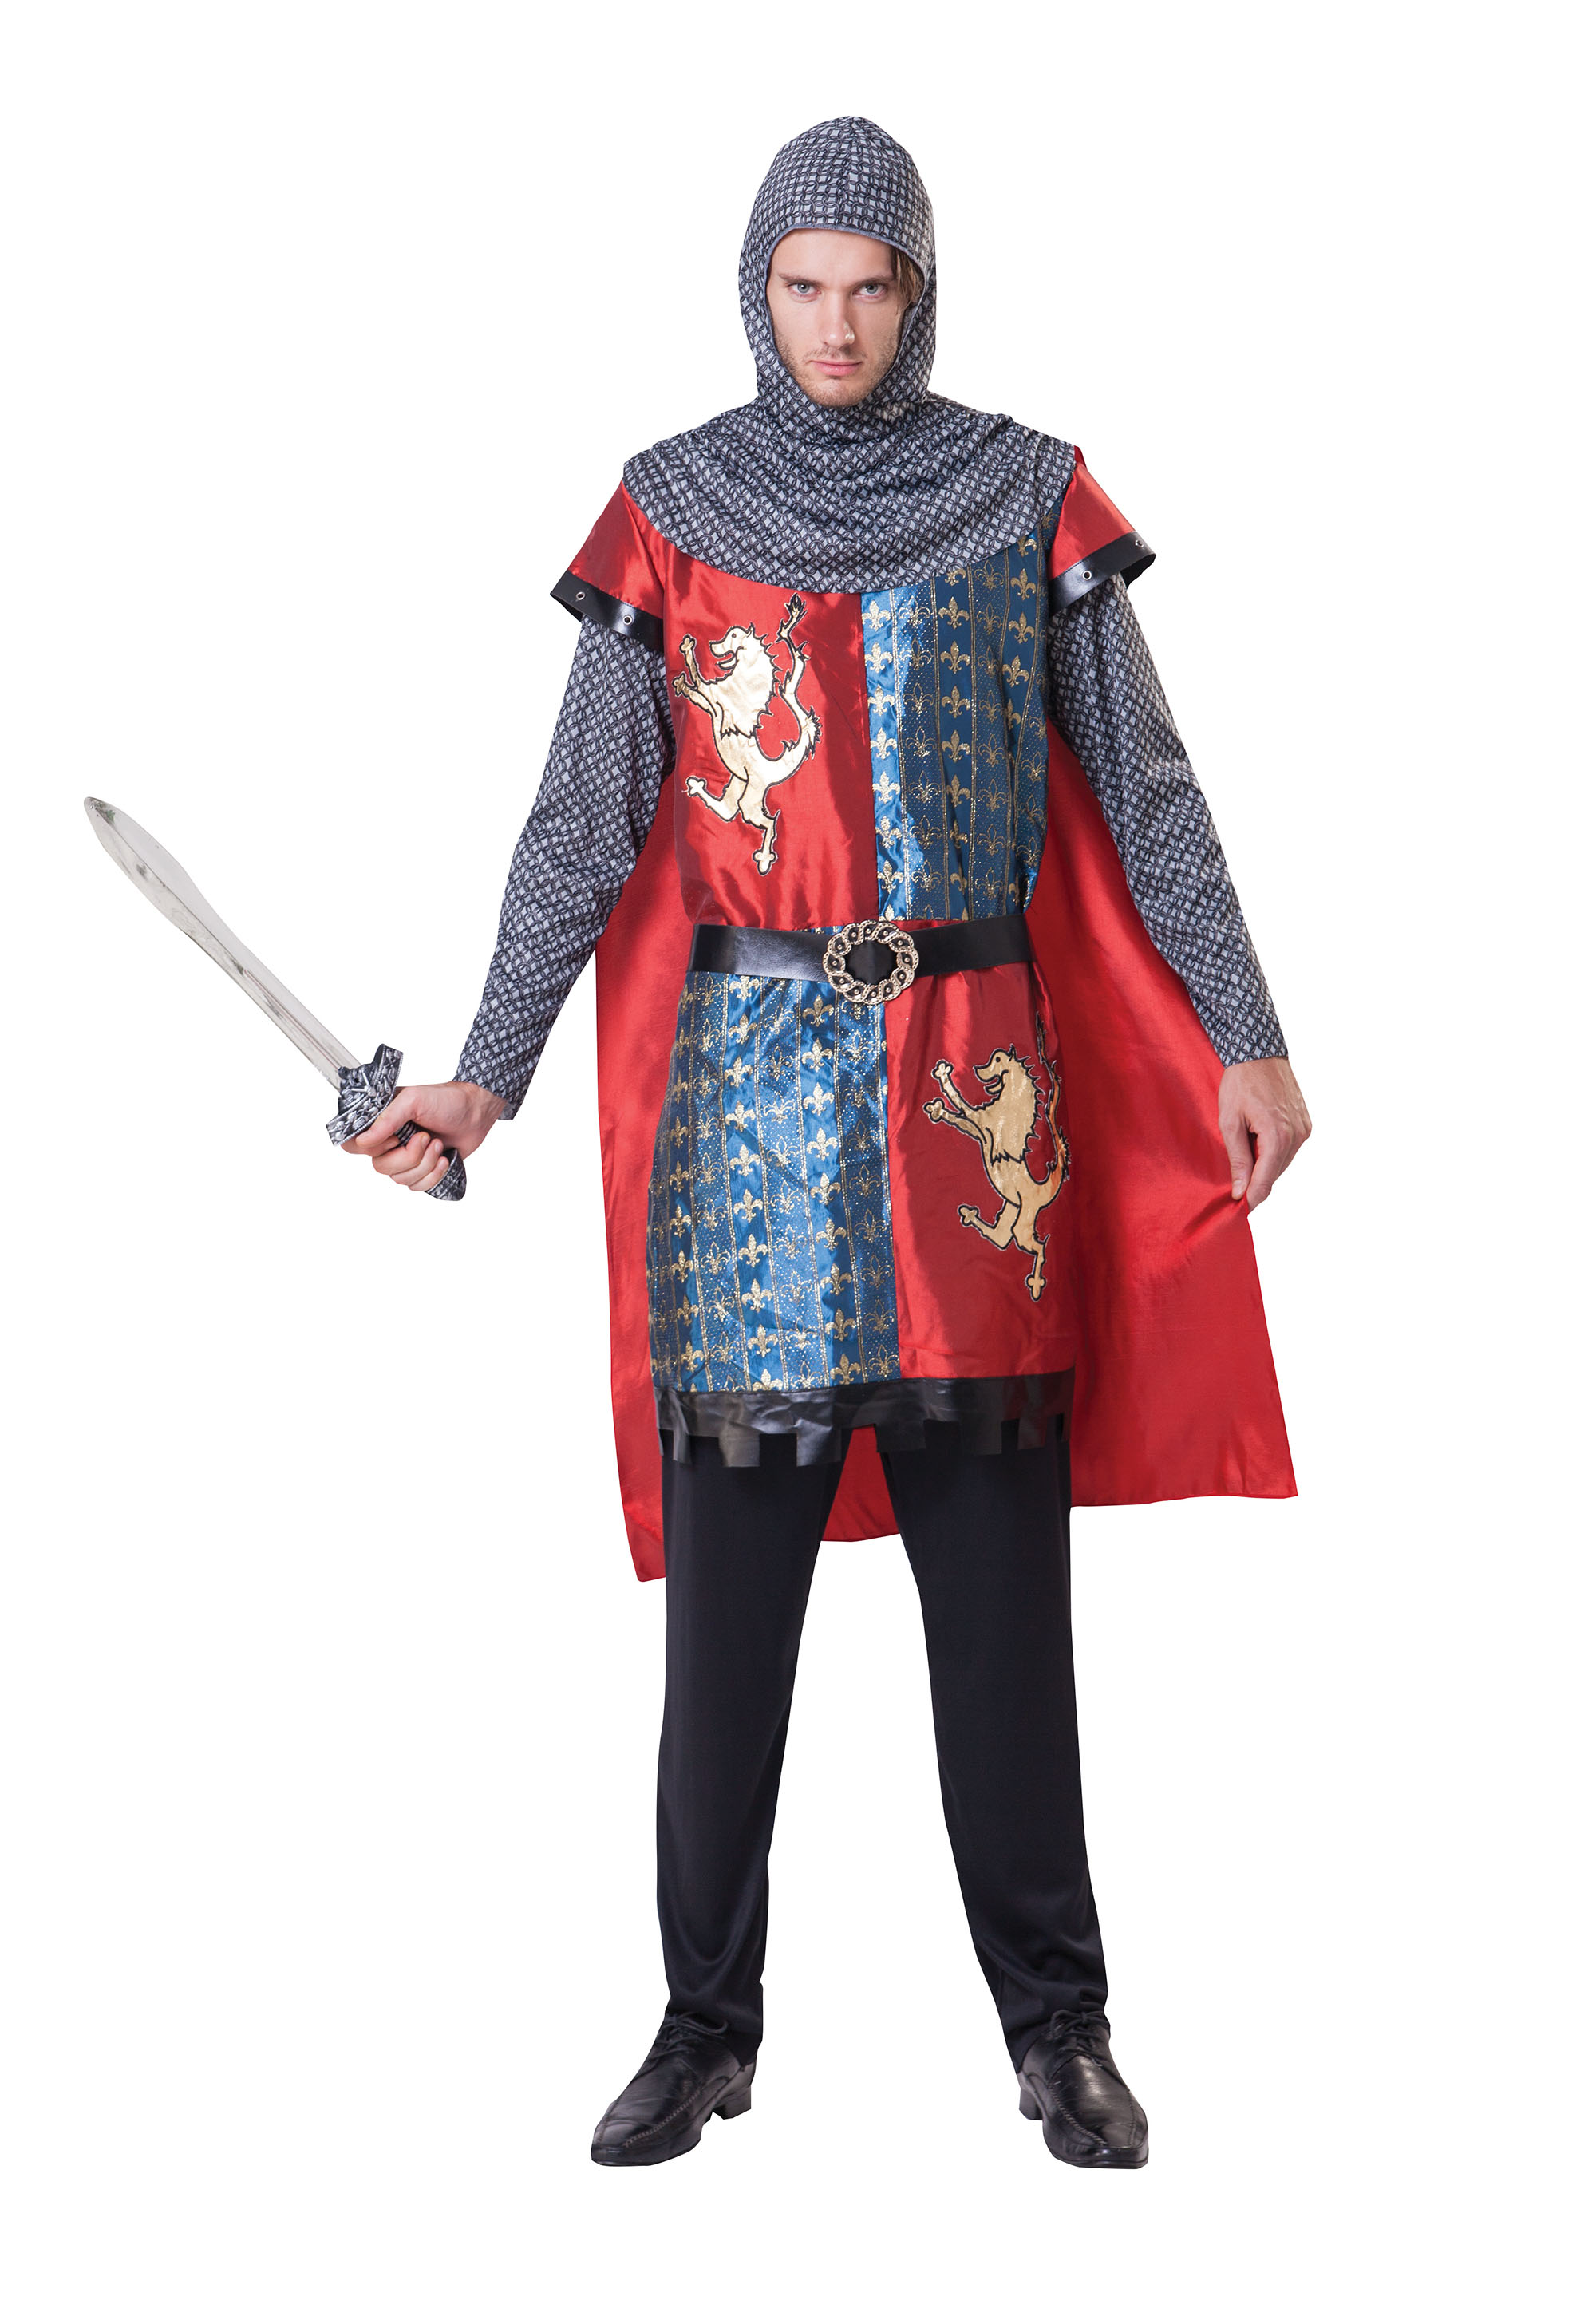 "Mens Adult Medieval Knight Fancy Dress Costume Outfit - One Size Up To 44"" Chest"